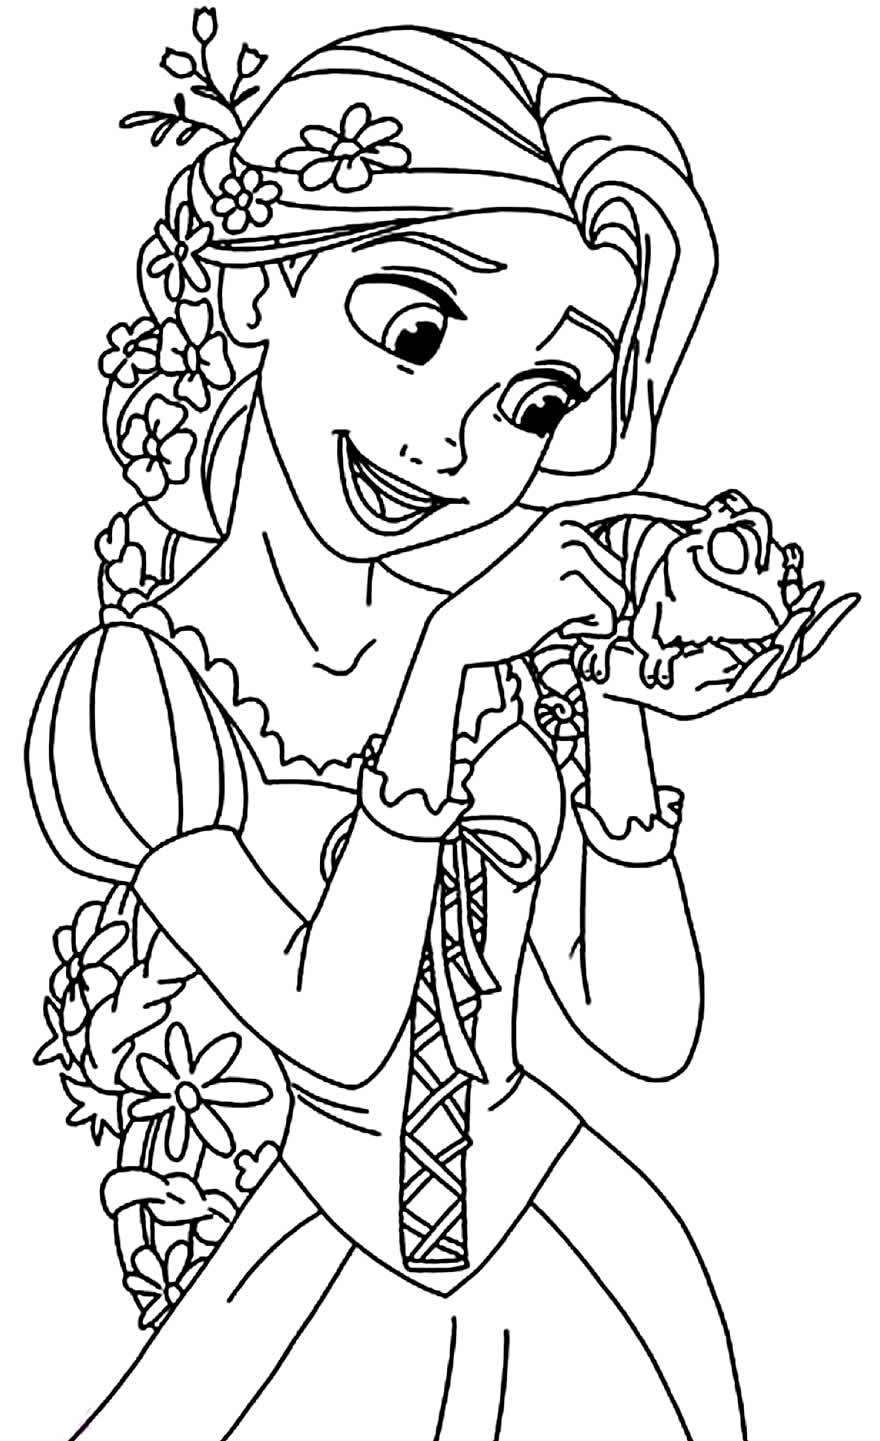 tangled for coloring tangled free to color for children tangled kids coloring tangled for coloring